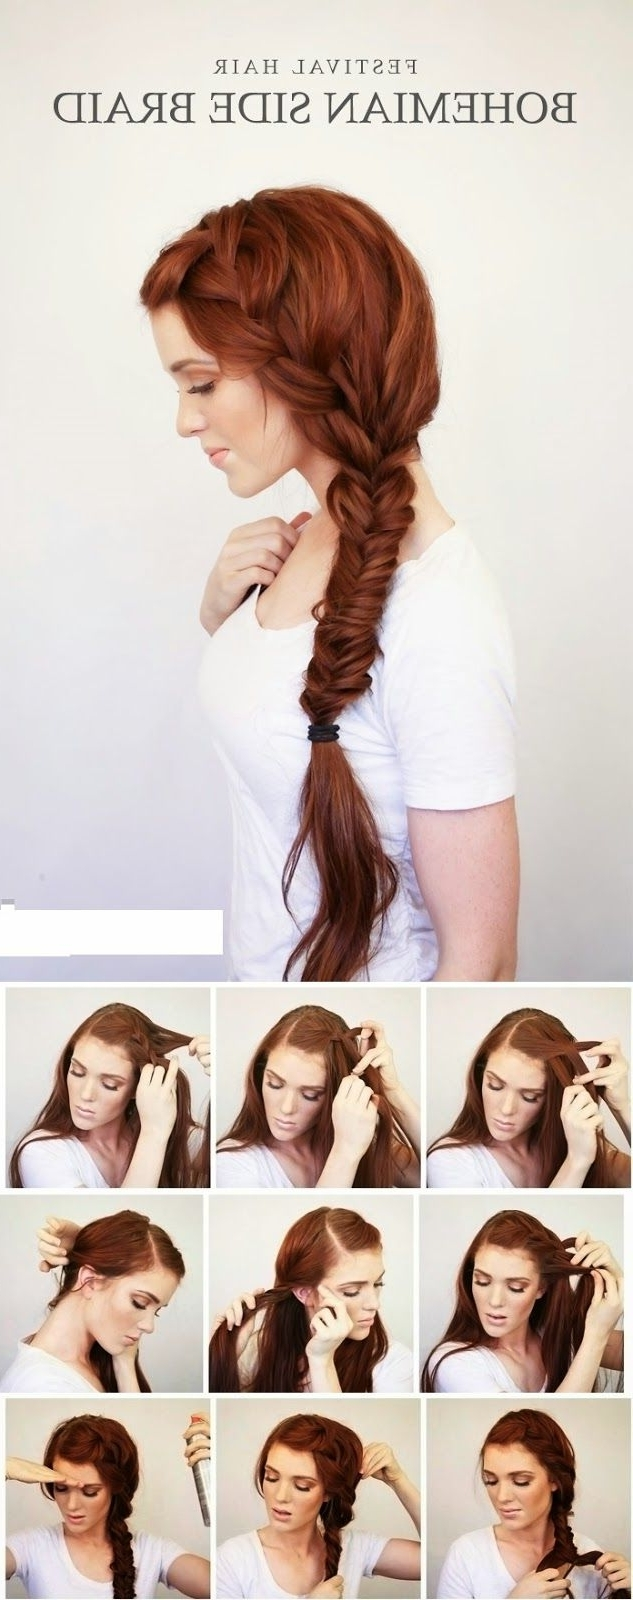 Teenage Fashion Blog: Bohemian Side Braid Festival Hair Tutorial With Regard To Famous Bohemian Side Braid Hairstyles (View 10 of 15)